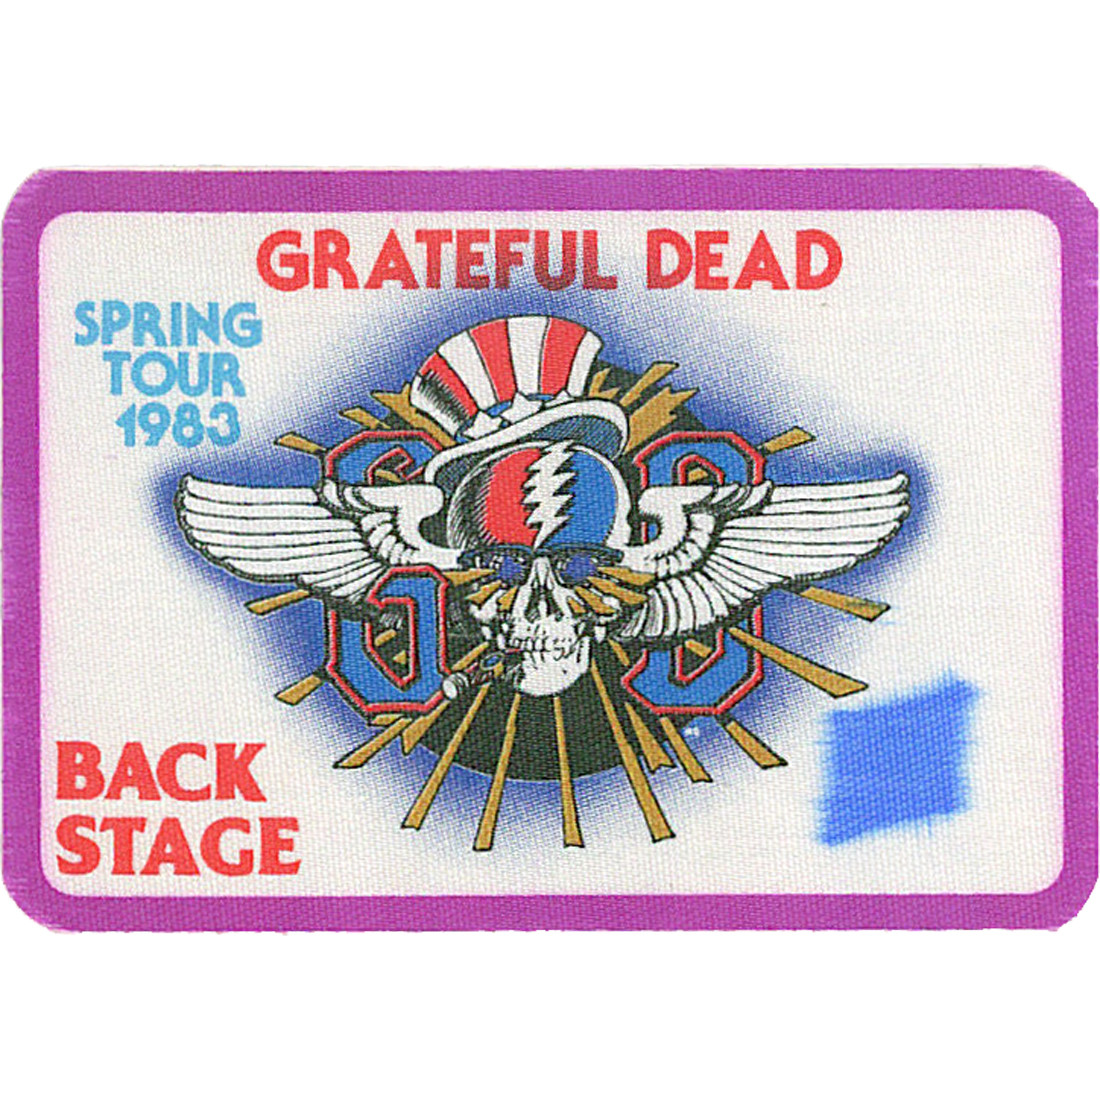 Grateful Dead 1983 Spring Tour Purple Backstage Pass